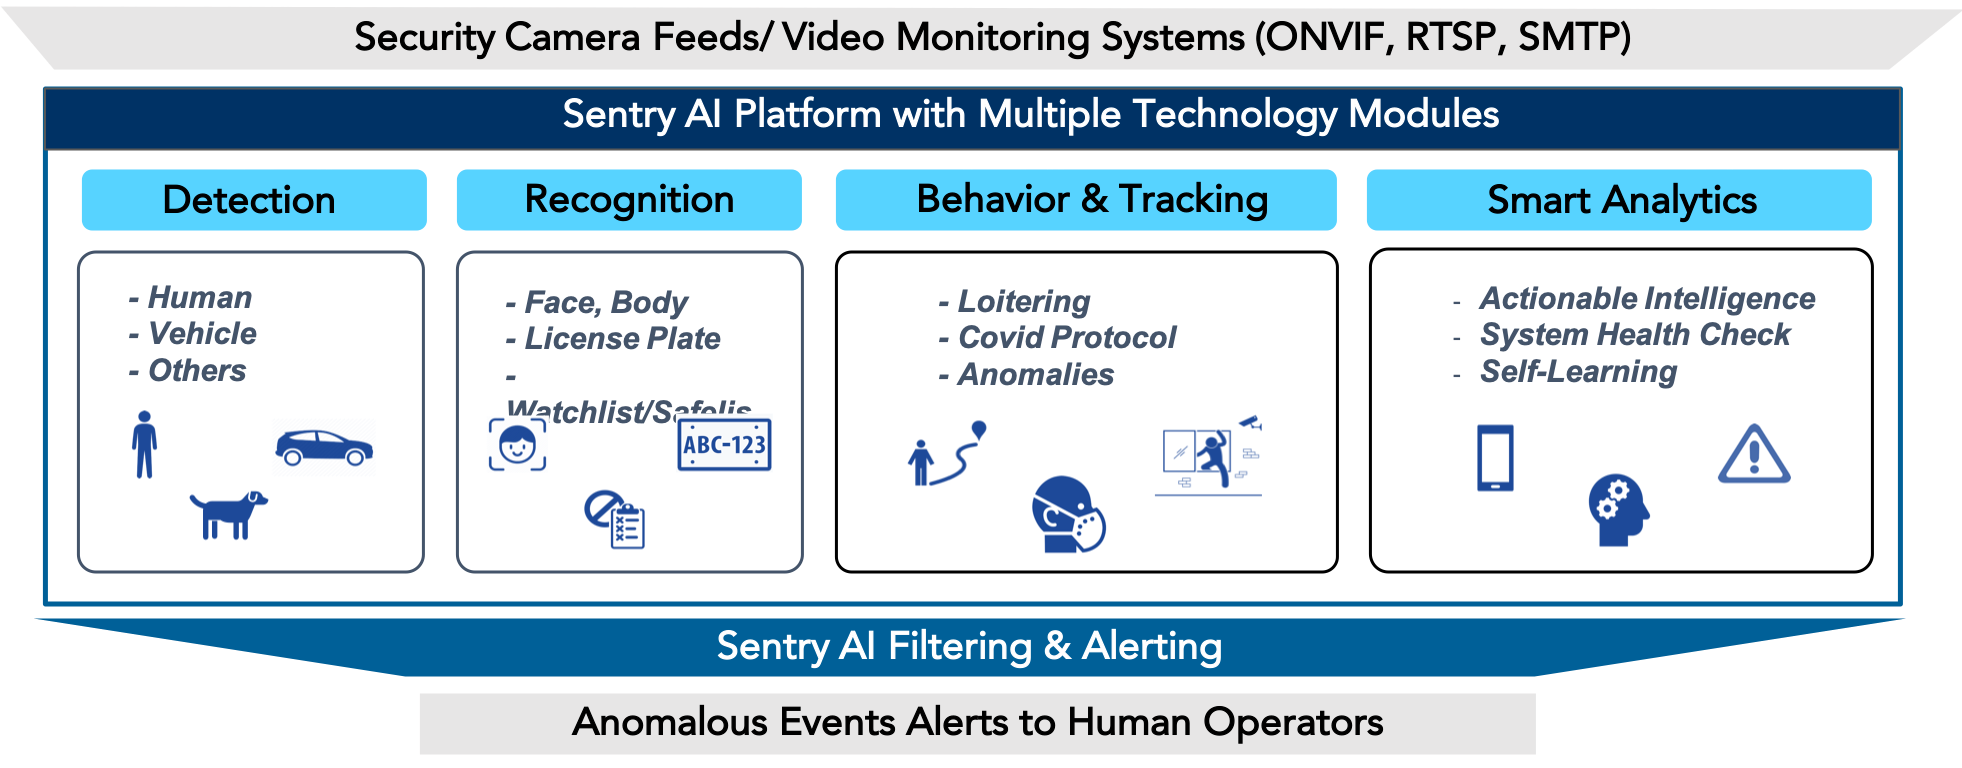 Sentry AI uses the latest Computer Vision techonology to offer much more efficient security monitoring.